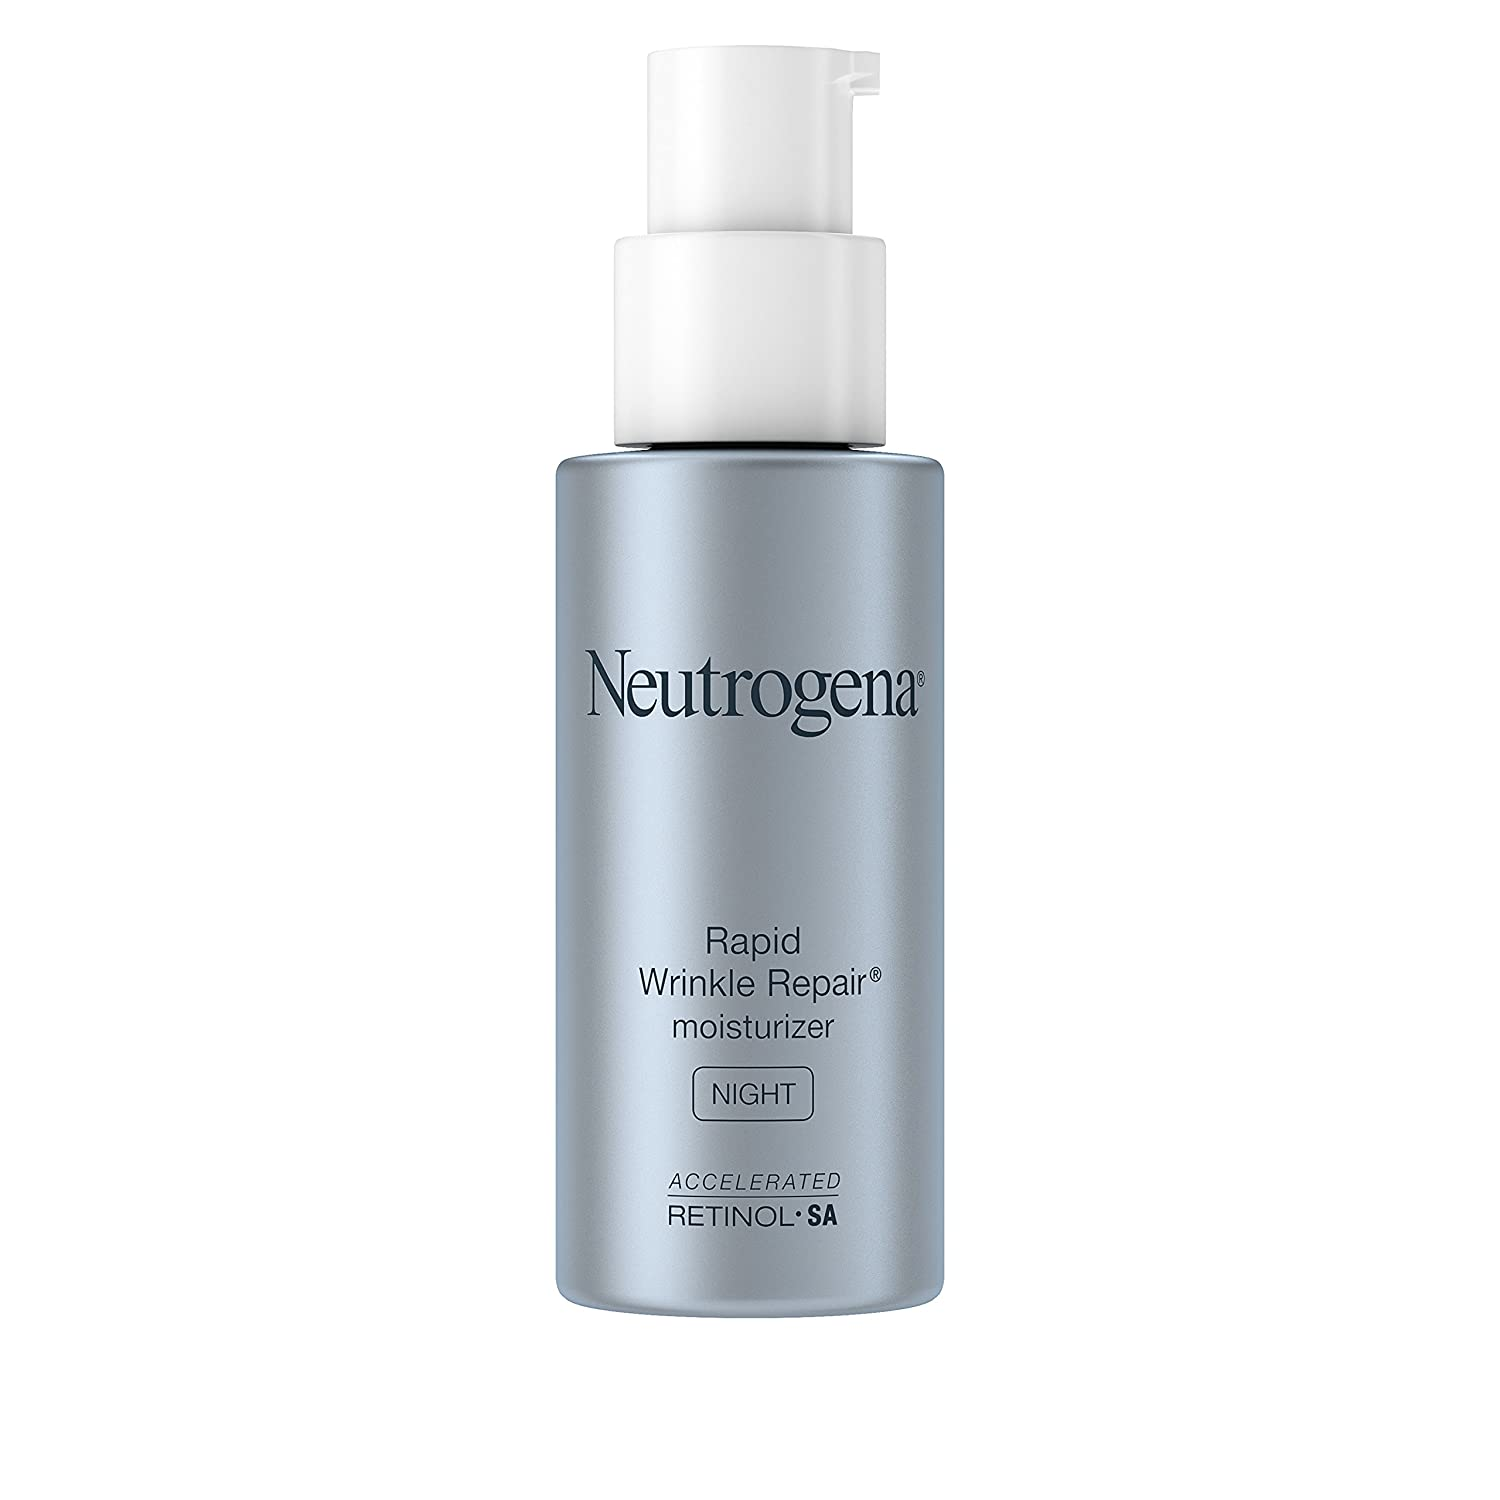 Neutrogena Rapid Wrinkle Repair Retinol Anti-Wrinkle Night Cream, Anti-Wrinkle Face & Neck Cream Moisturizer with Hyaluronic Acid, Retinol & Glycerin, 1 fl. oz